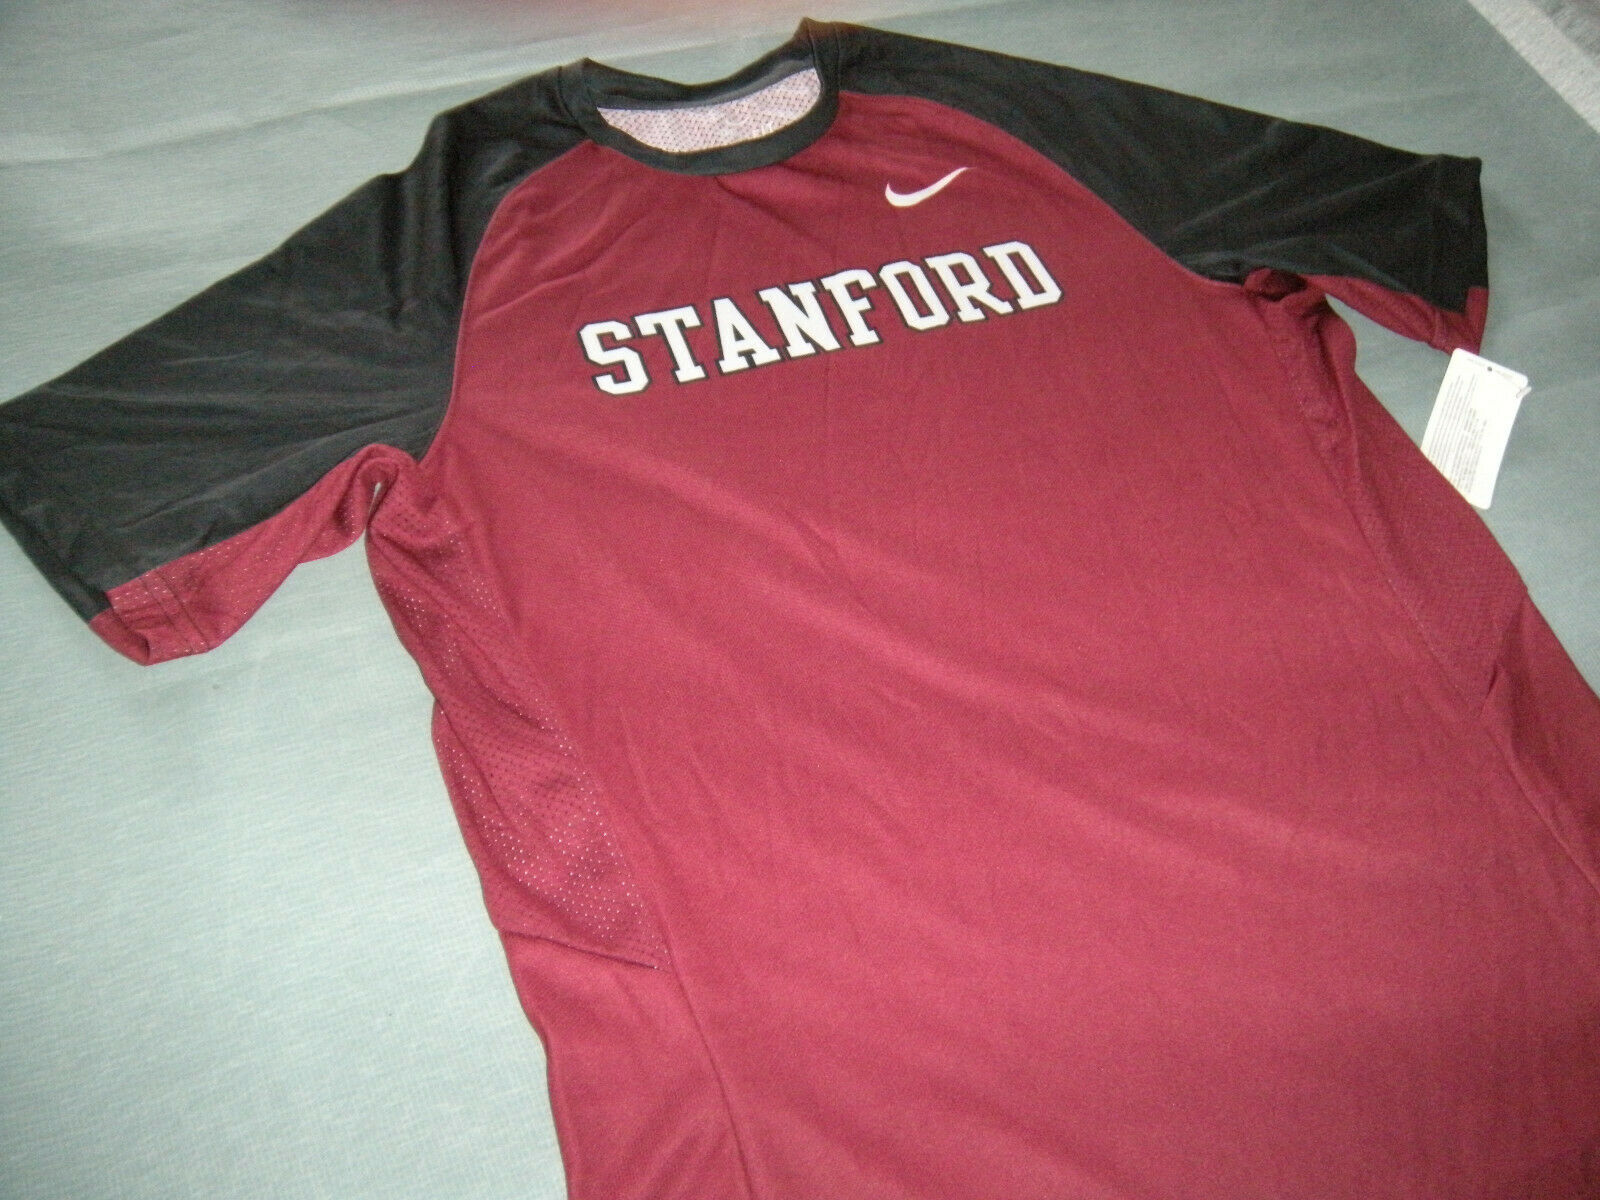 af815d09afb University Fit Top Shirt New with tags Medium Stanford Dri ...